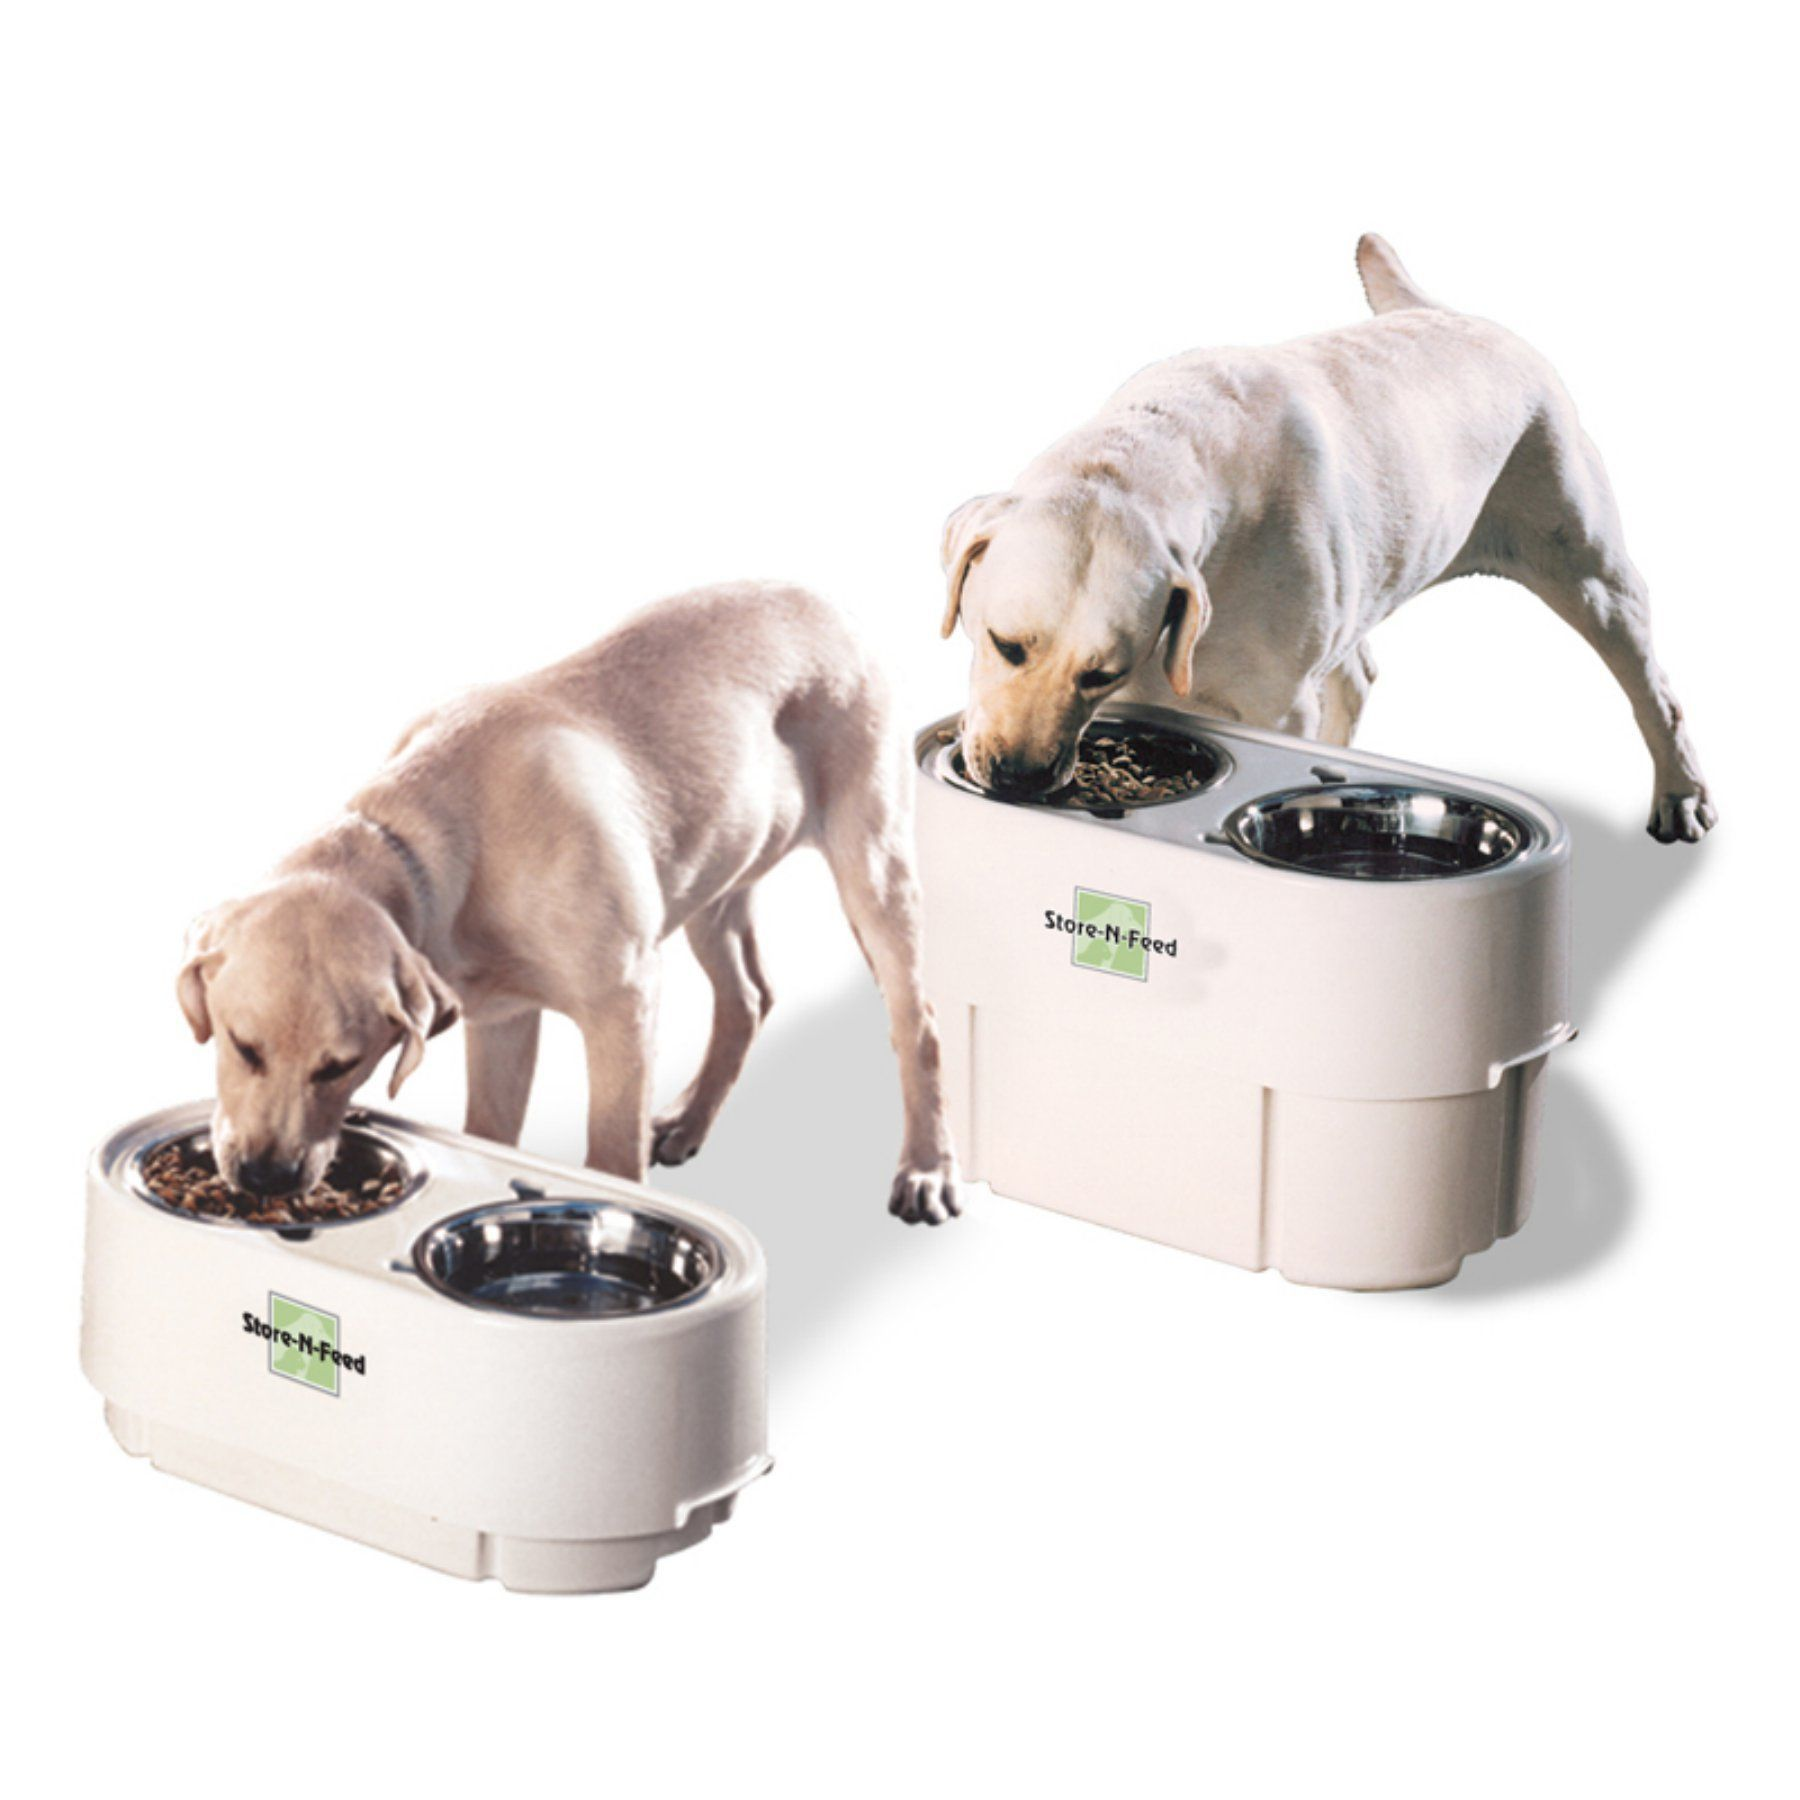 Store N Feed Double Dog Bowl Feeder 2020076302 With Images